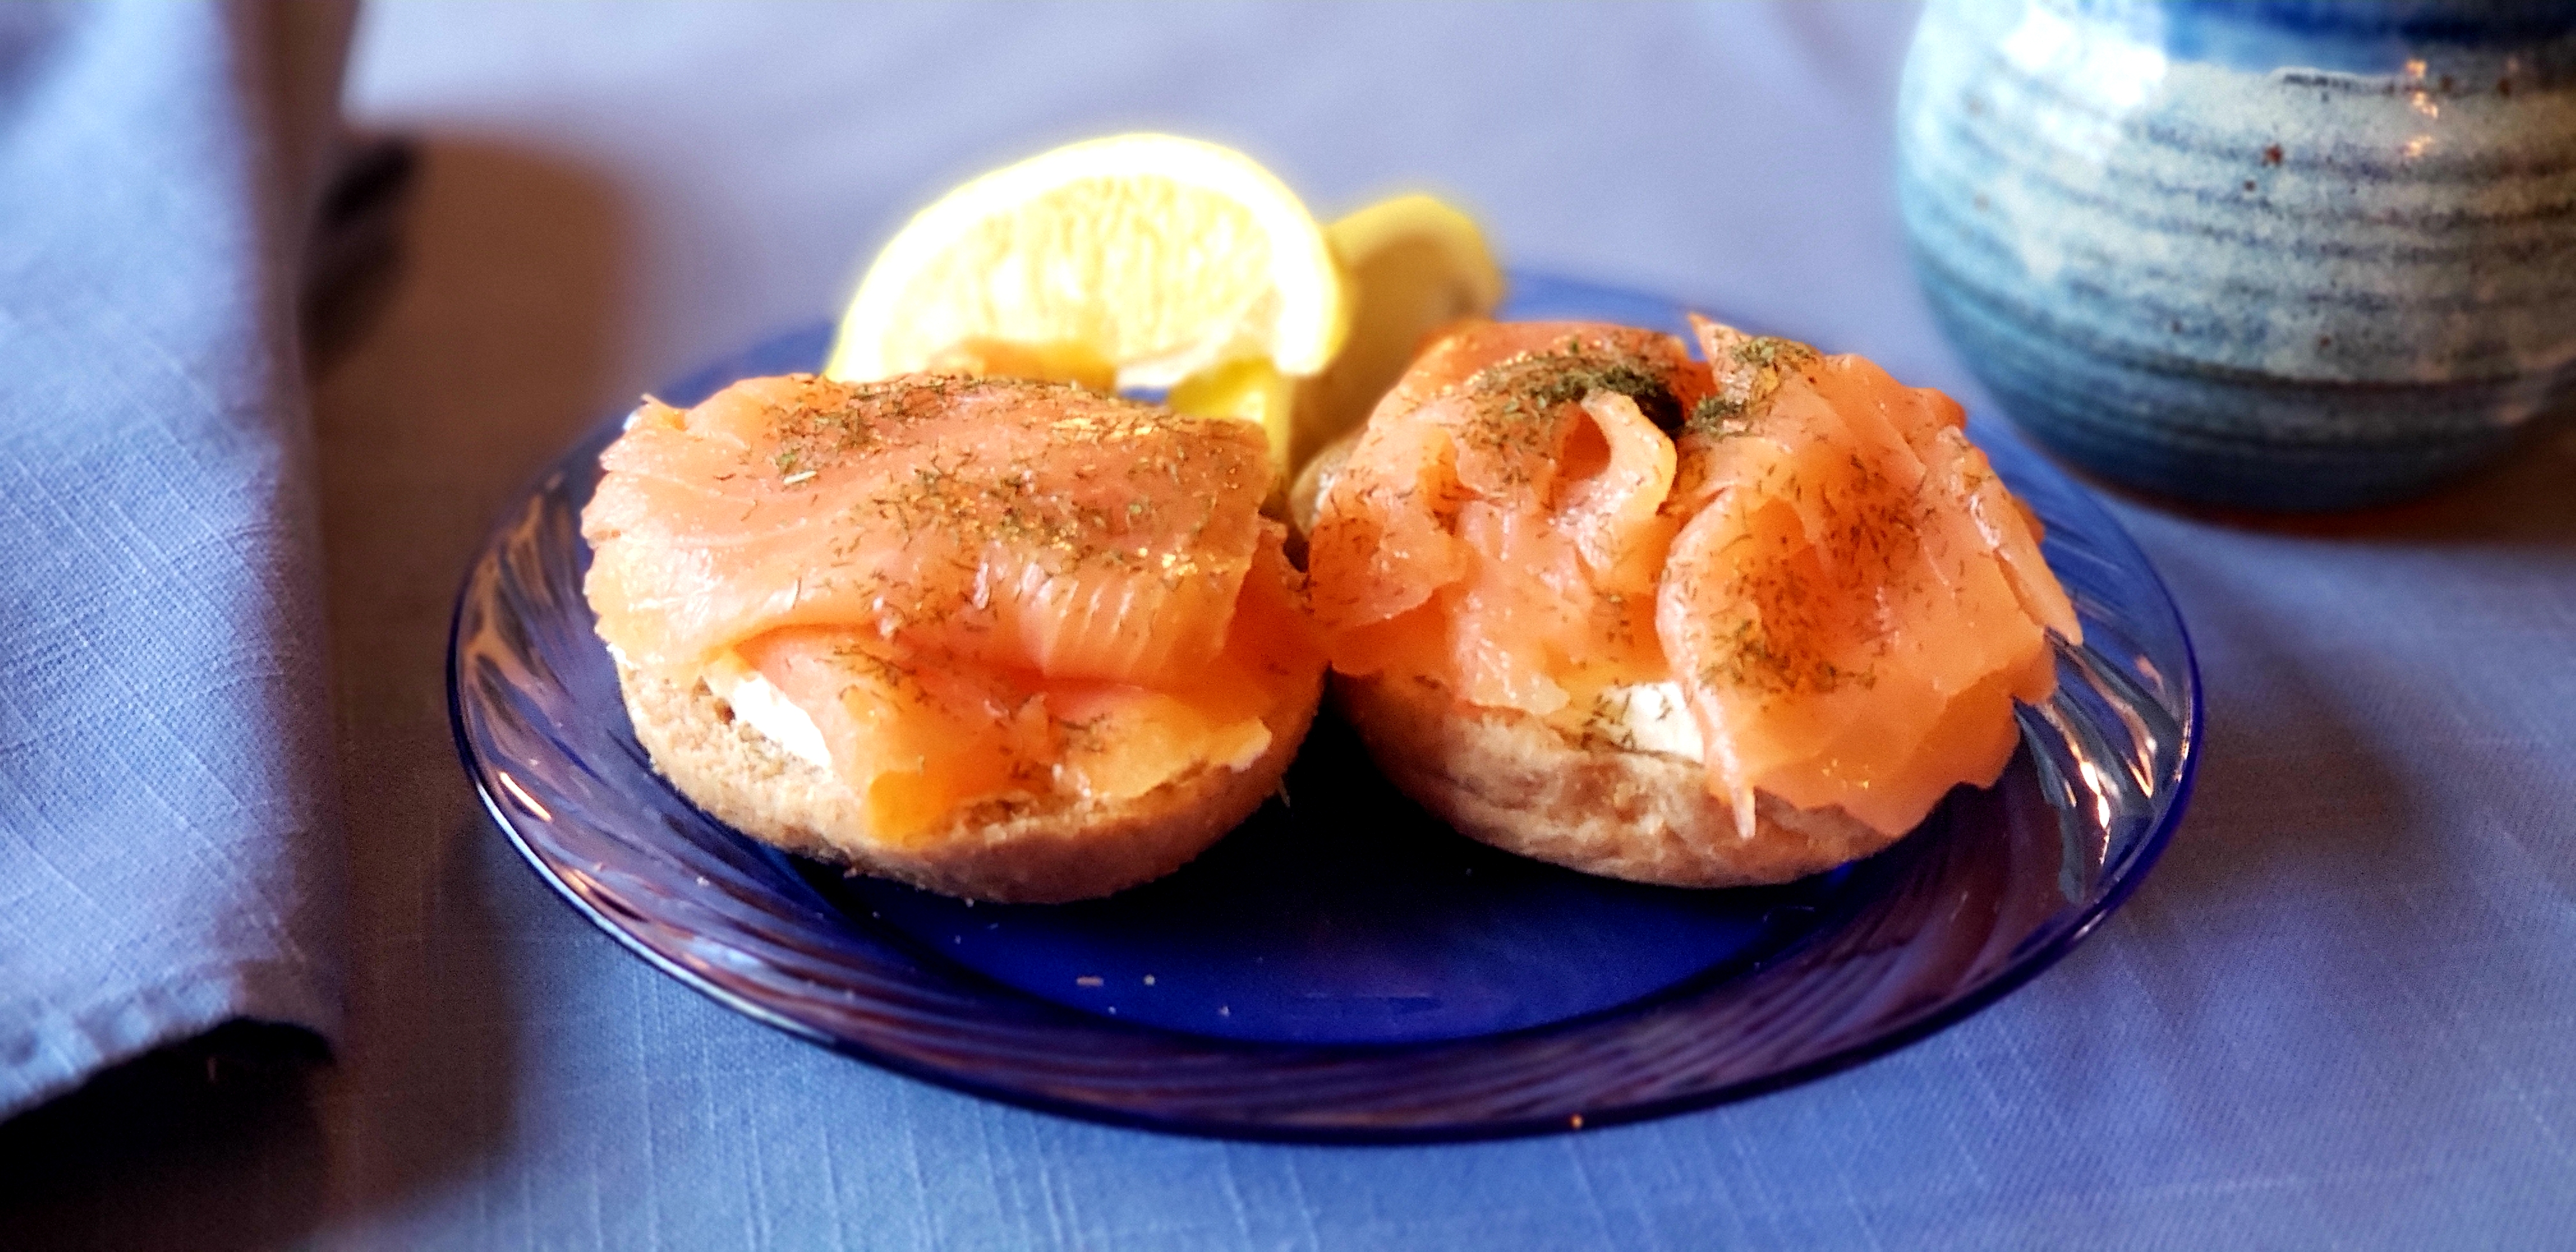 Smoked Salmon & Cream Cheese On Mini Bagel